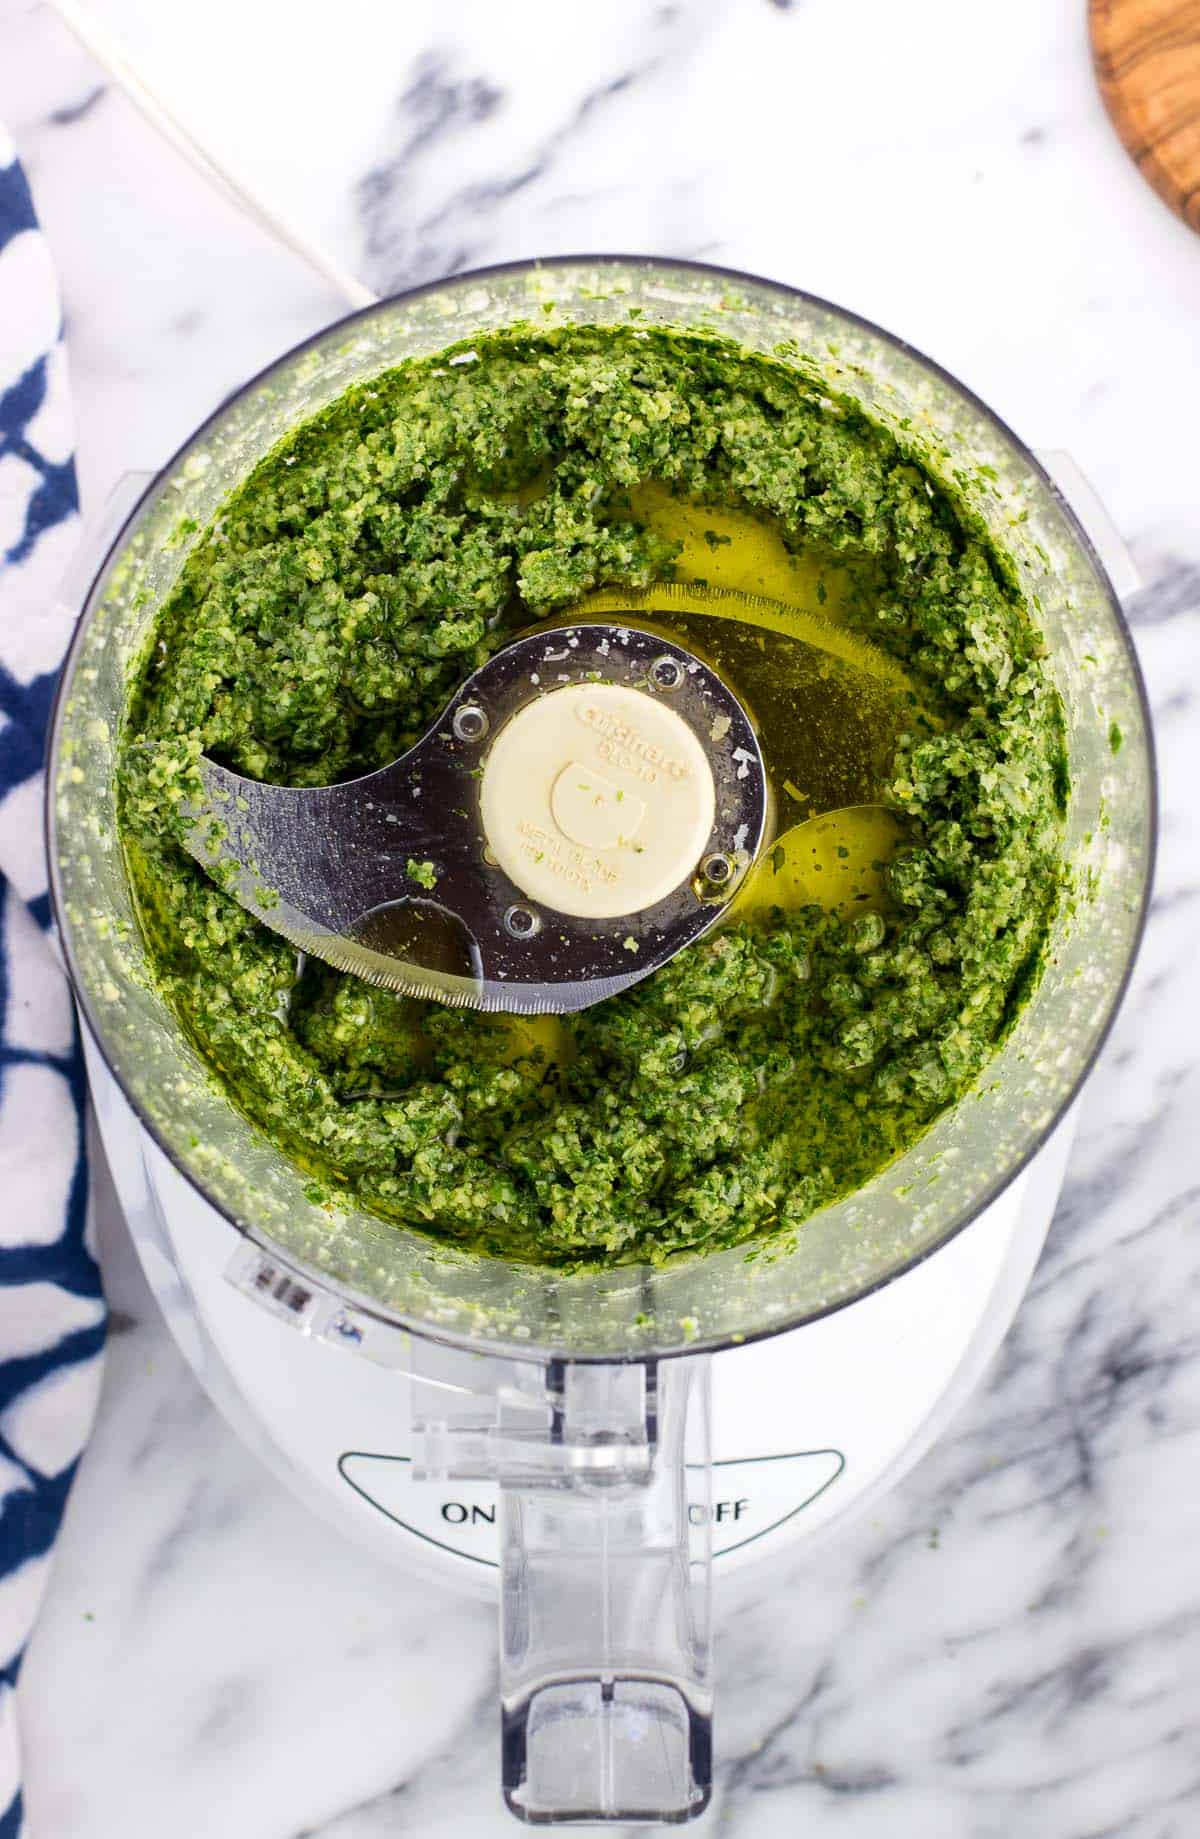 Olive oil poured into the food processor with the pesto ingredients.